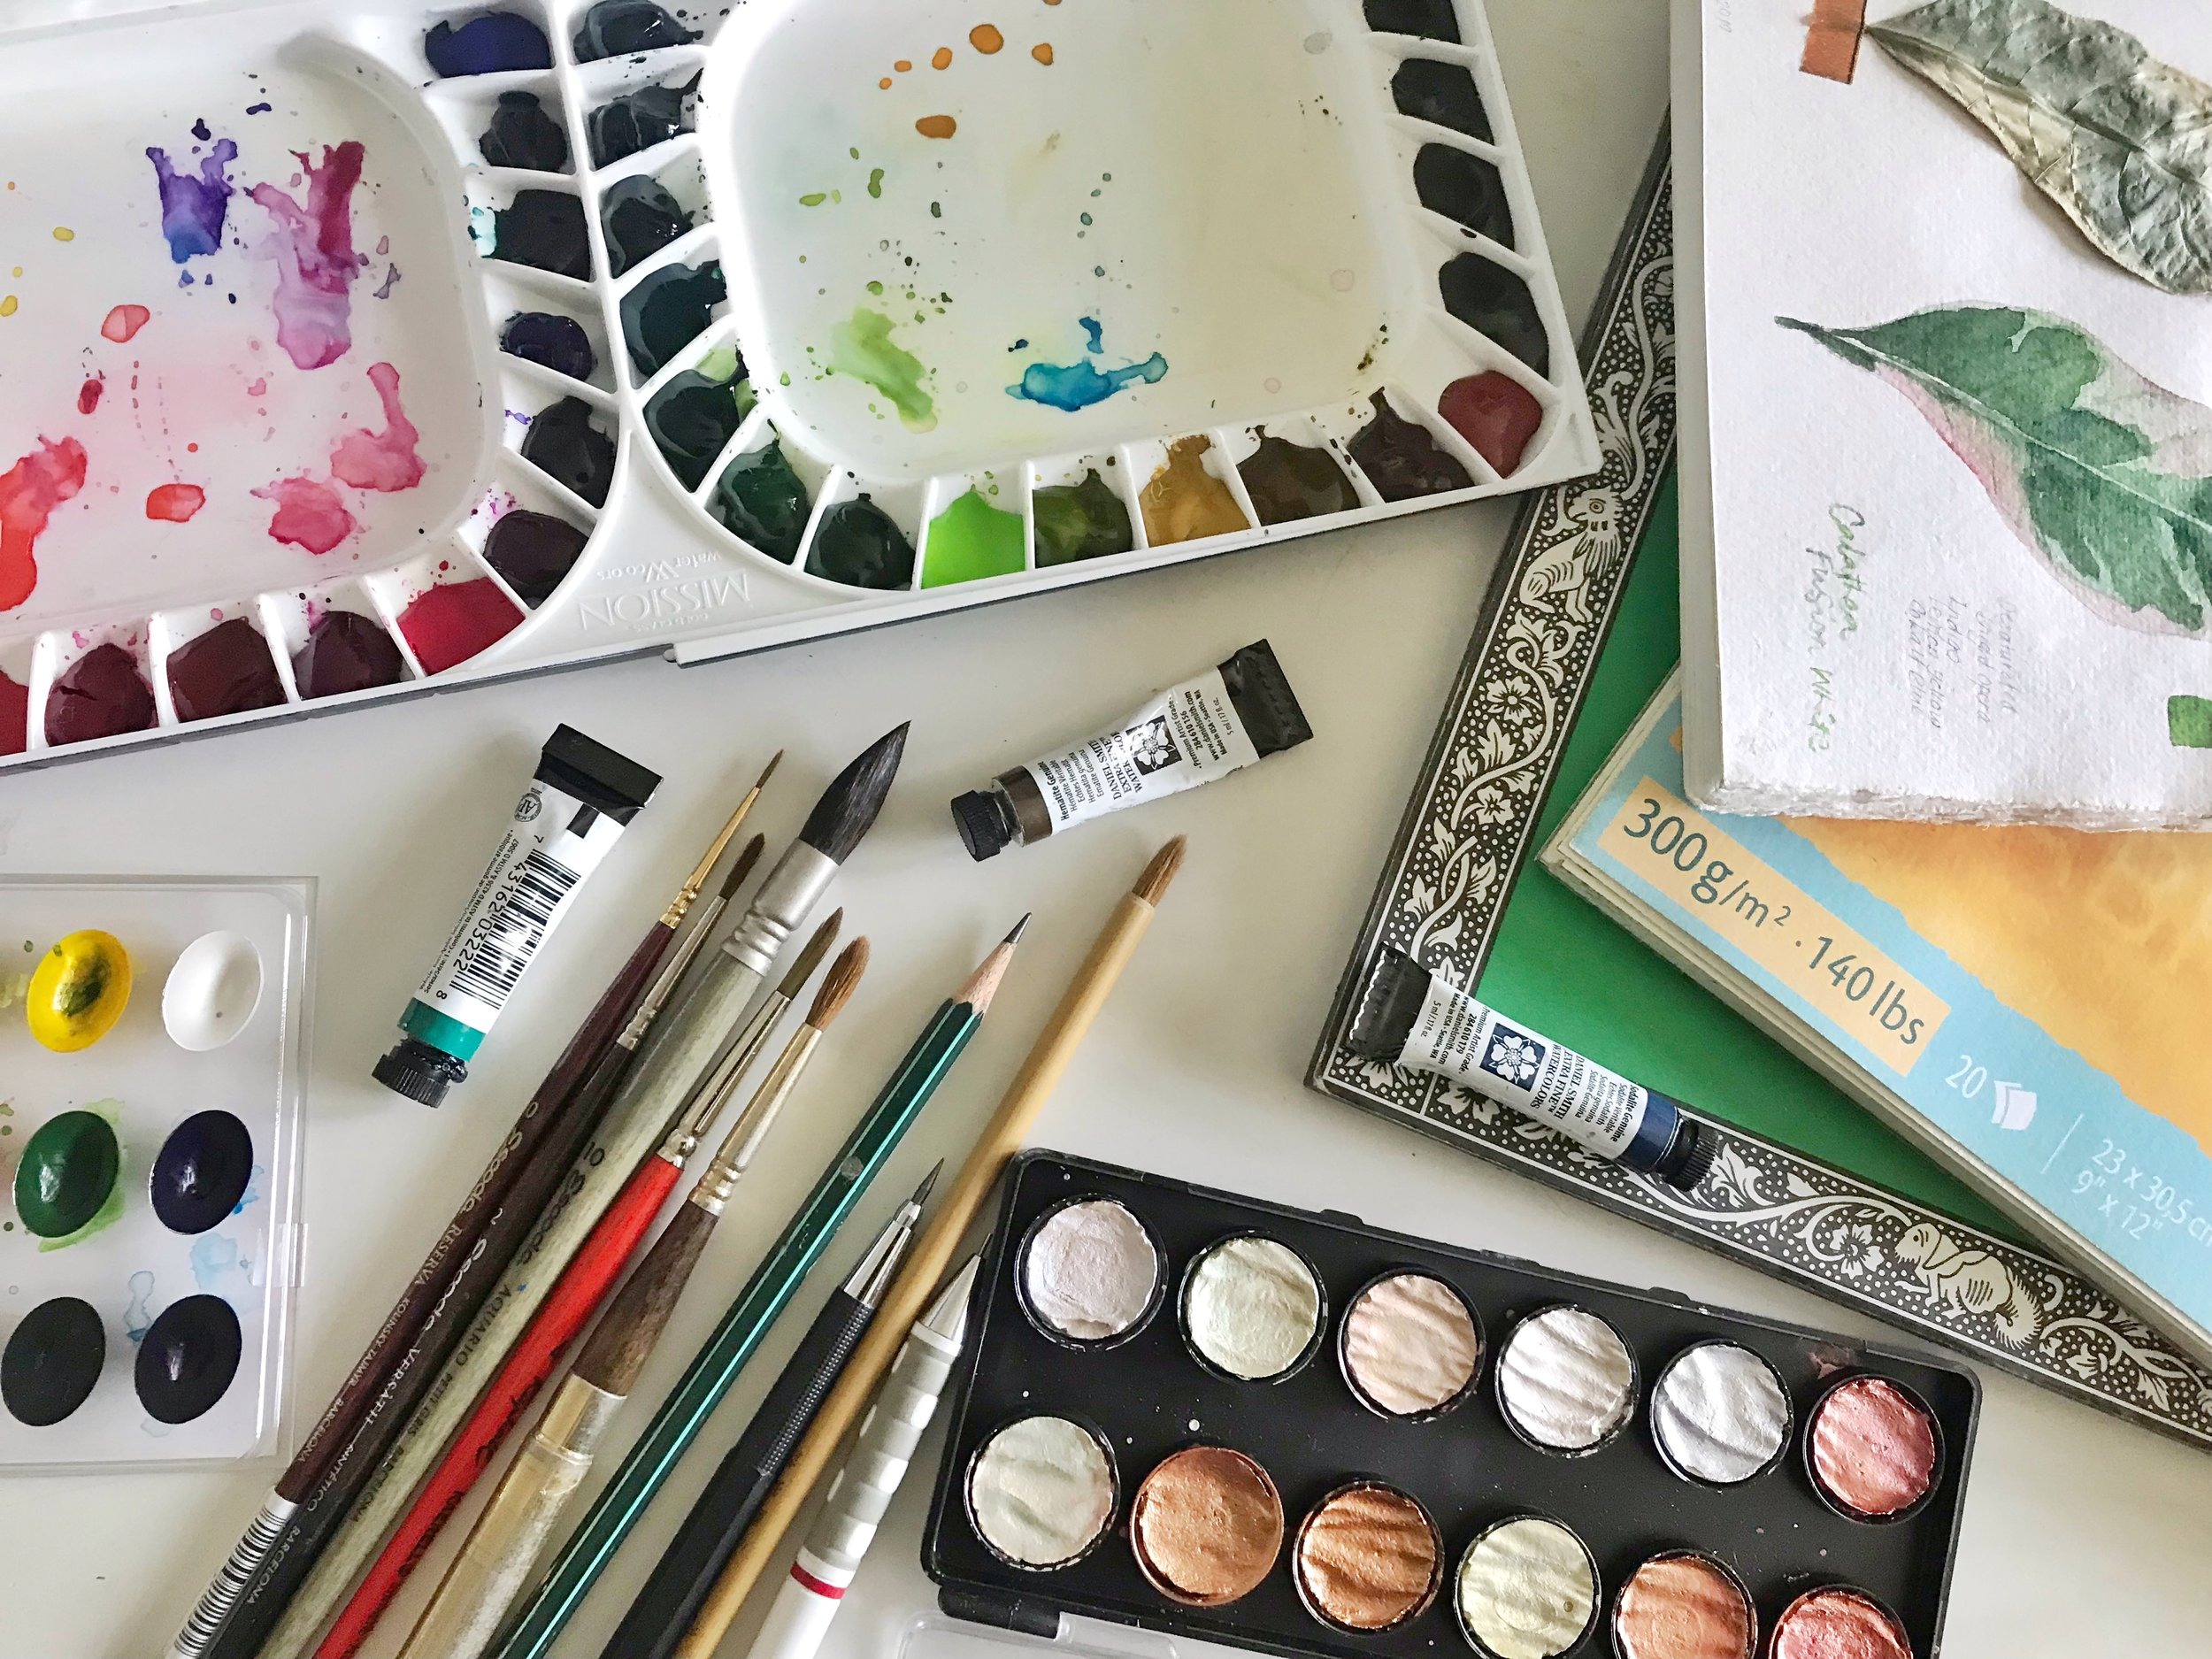 Find out which papers, paints, and brushes I use!